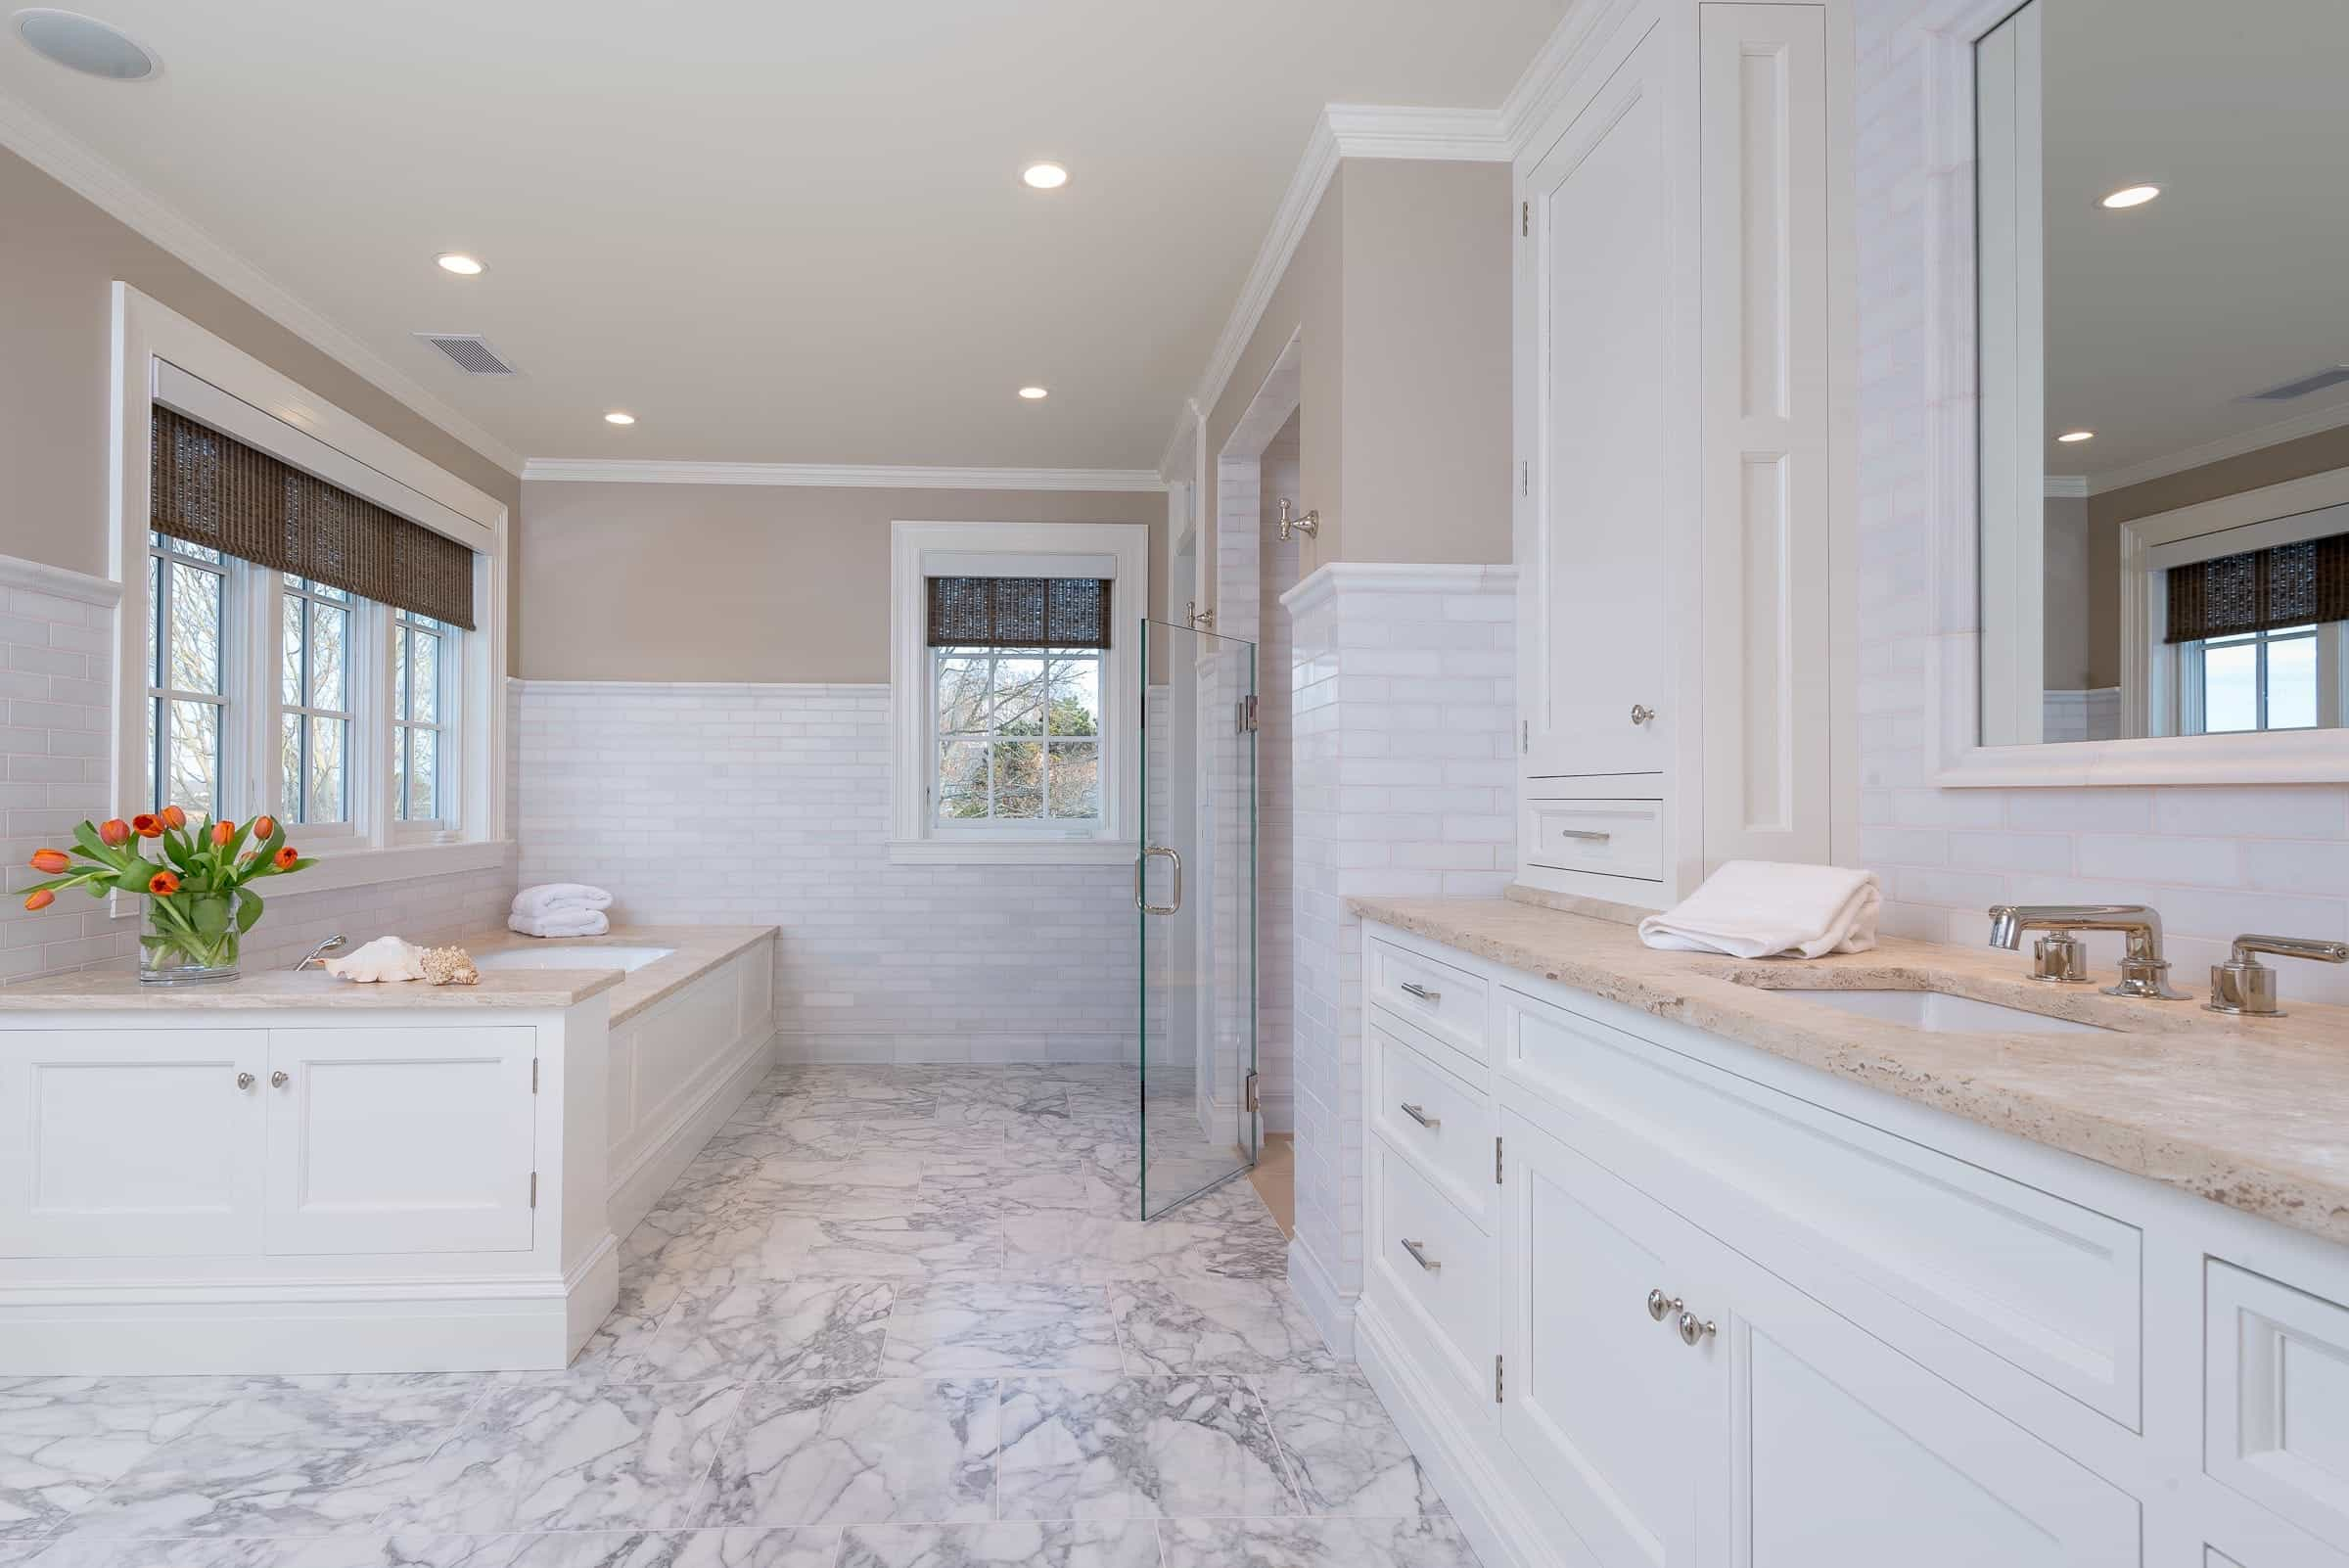 Elegance Transitional Bathroom With Calcutta Marble Floors (View 12 of 20)